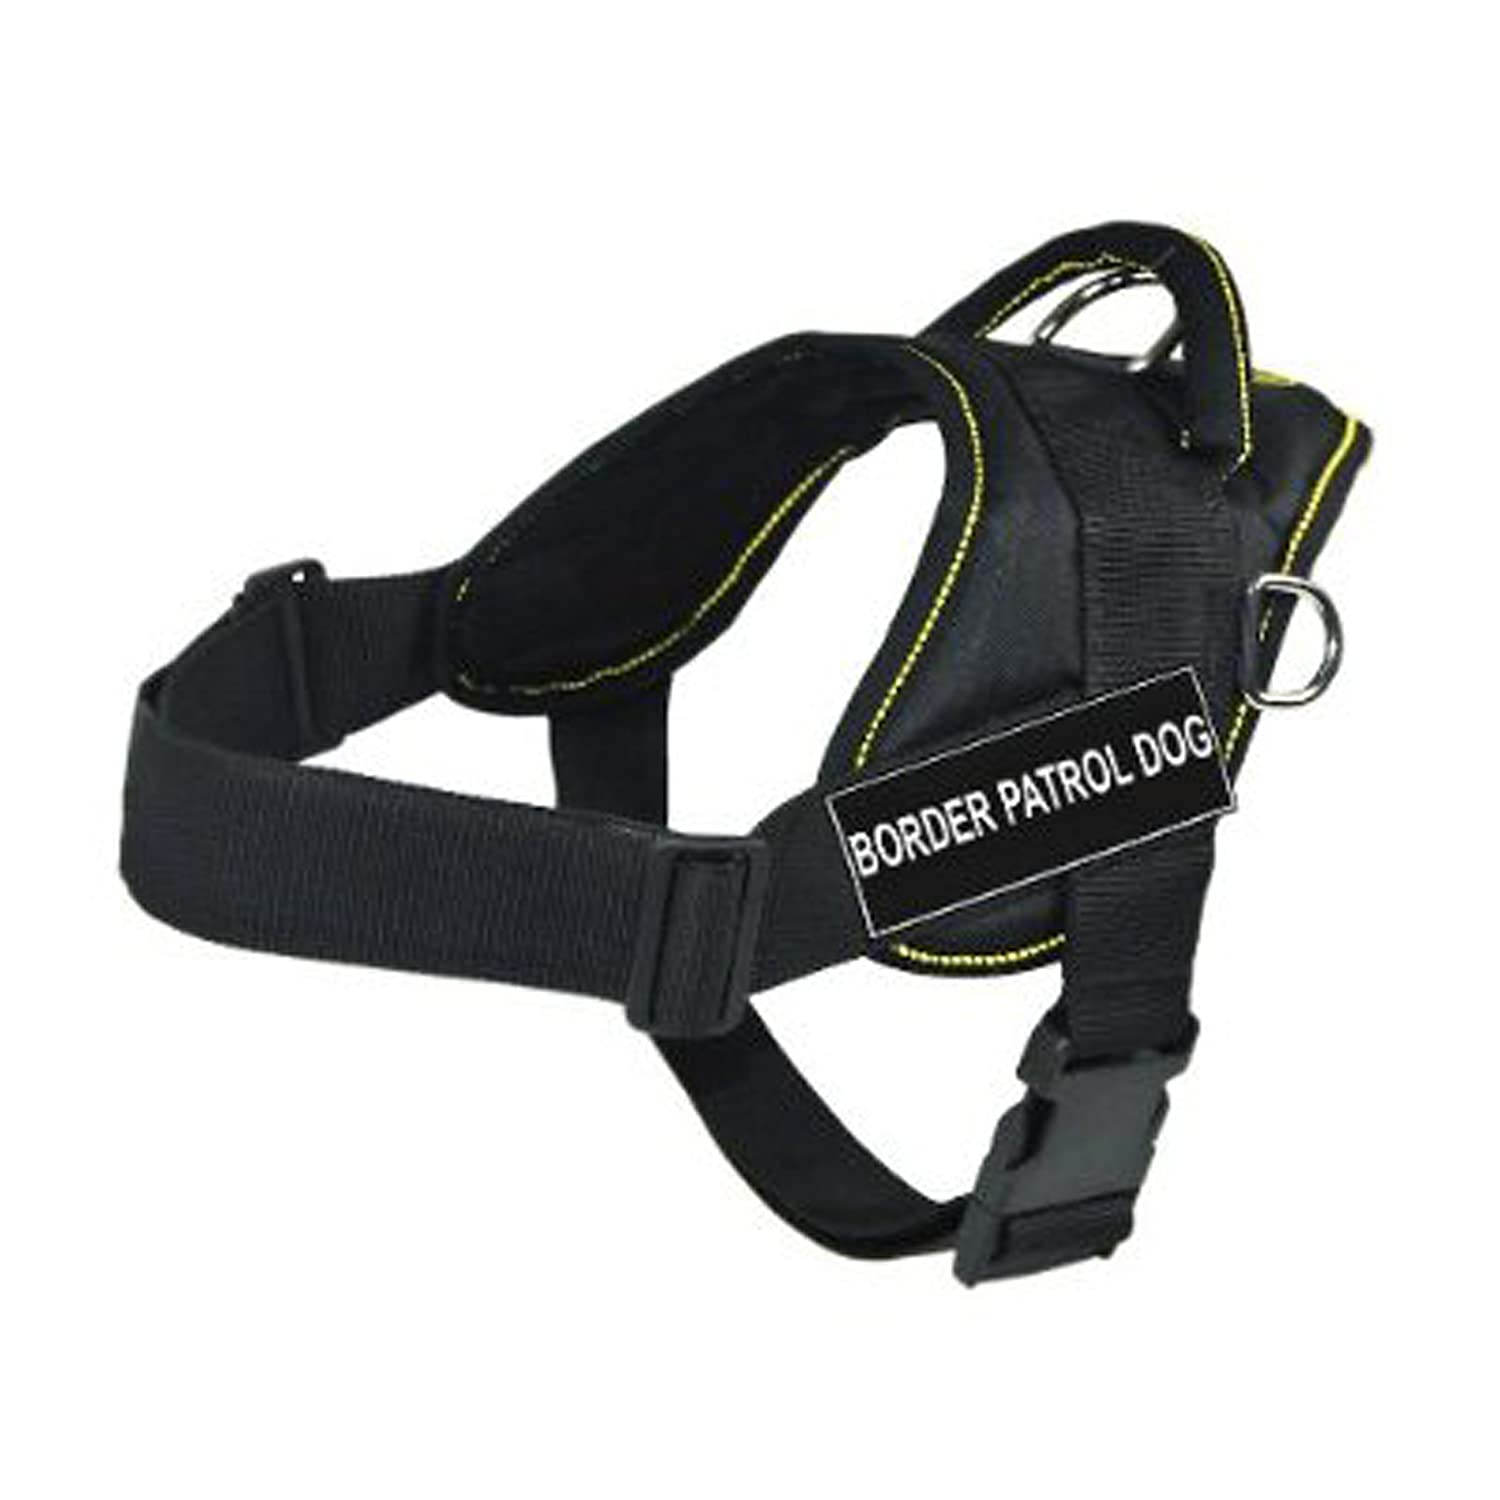 Dean & Tyler Fun Works Harness, Border Patrol Dog, Black with Yellow Trim, Medium, Fits Girth Size  28-Inch to 34-Inch